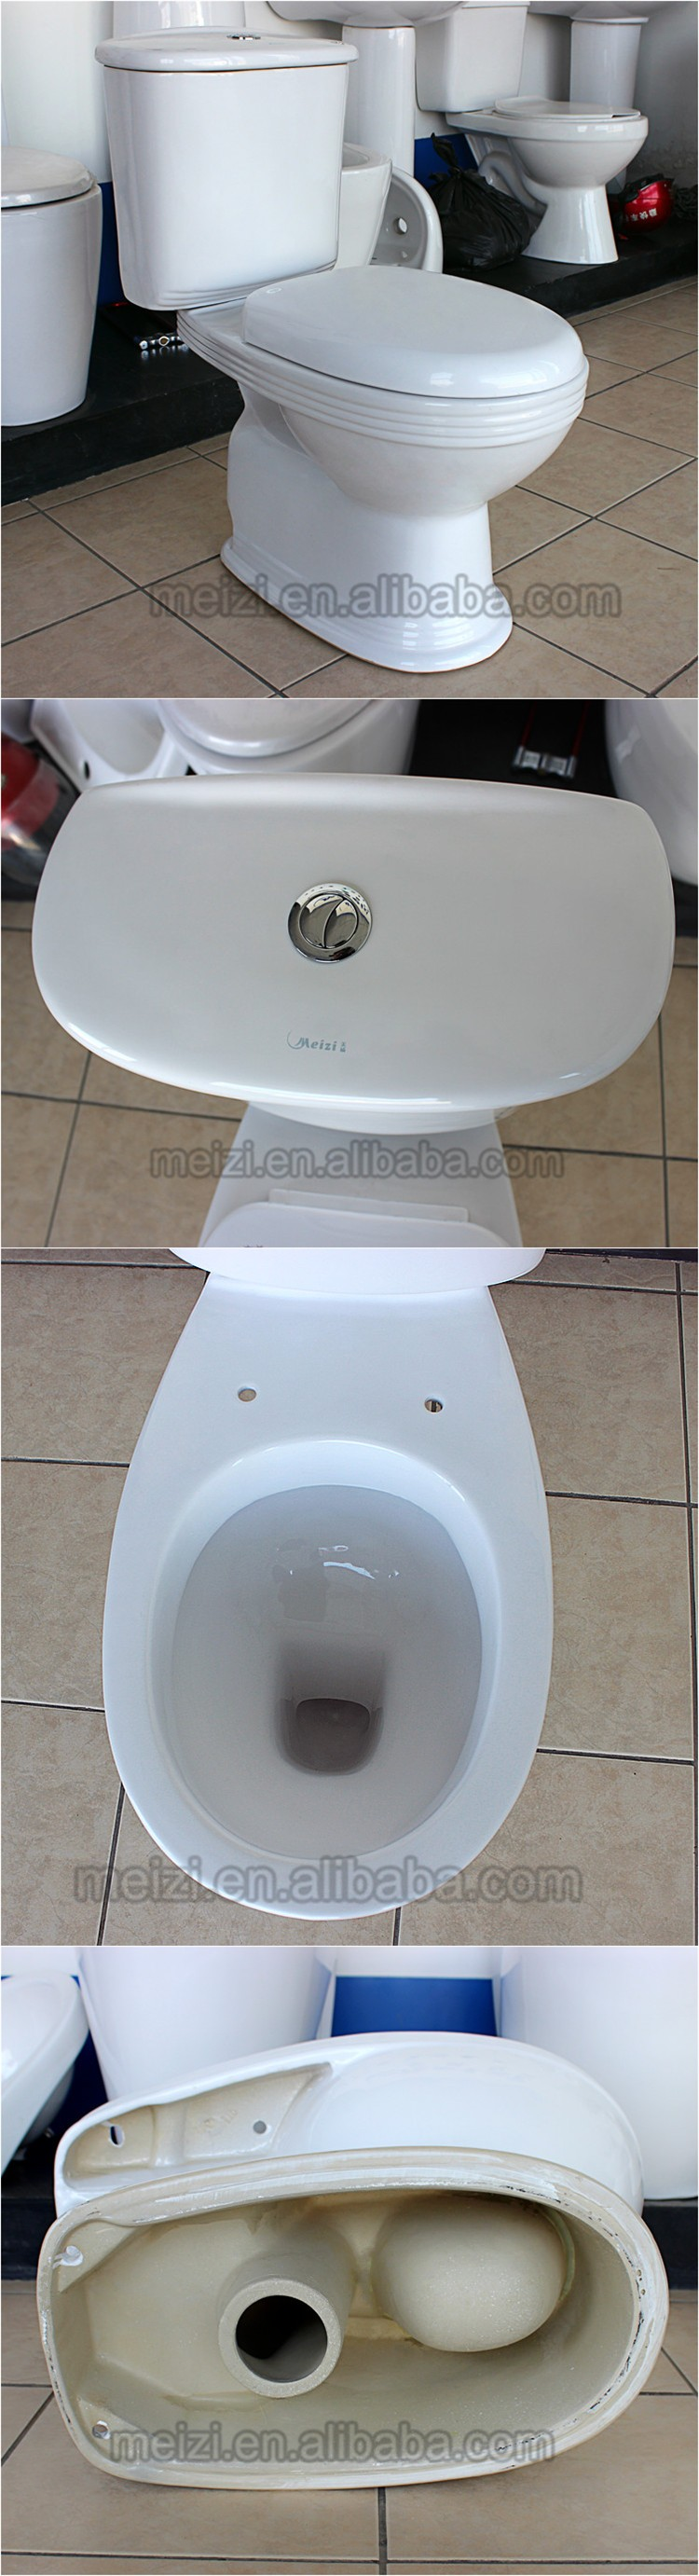 Washdown two piece outhouse toilets for sale